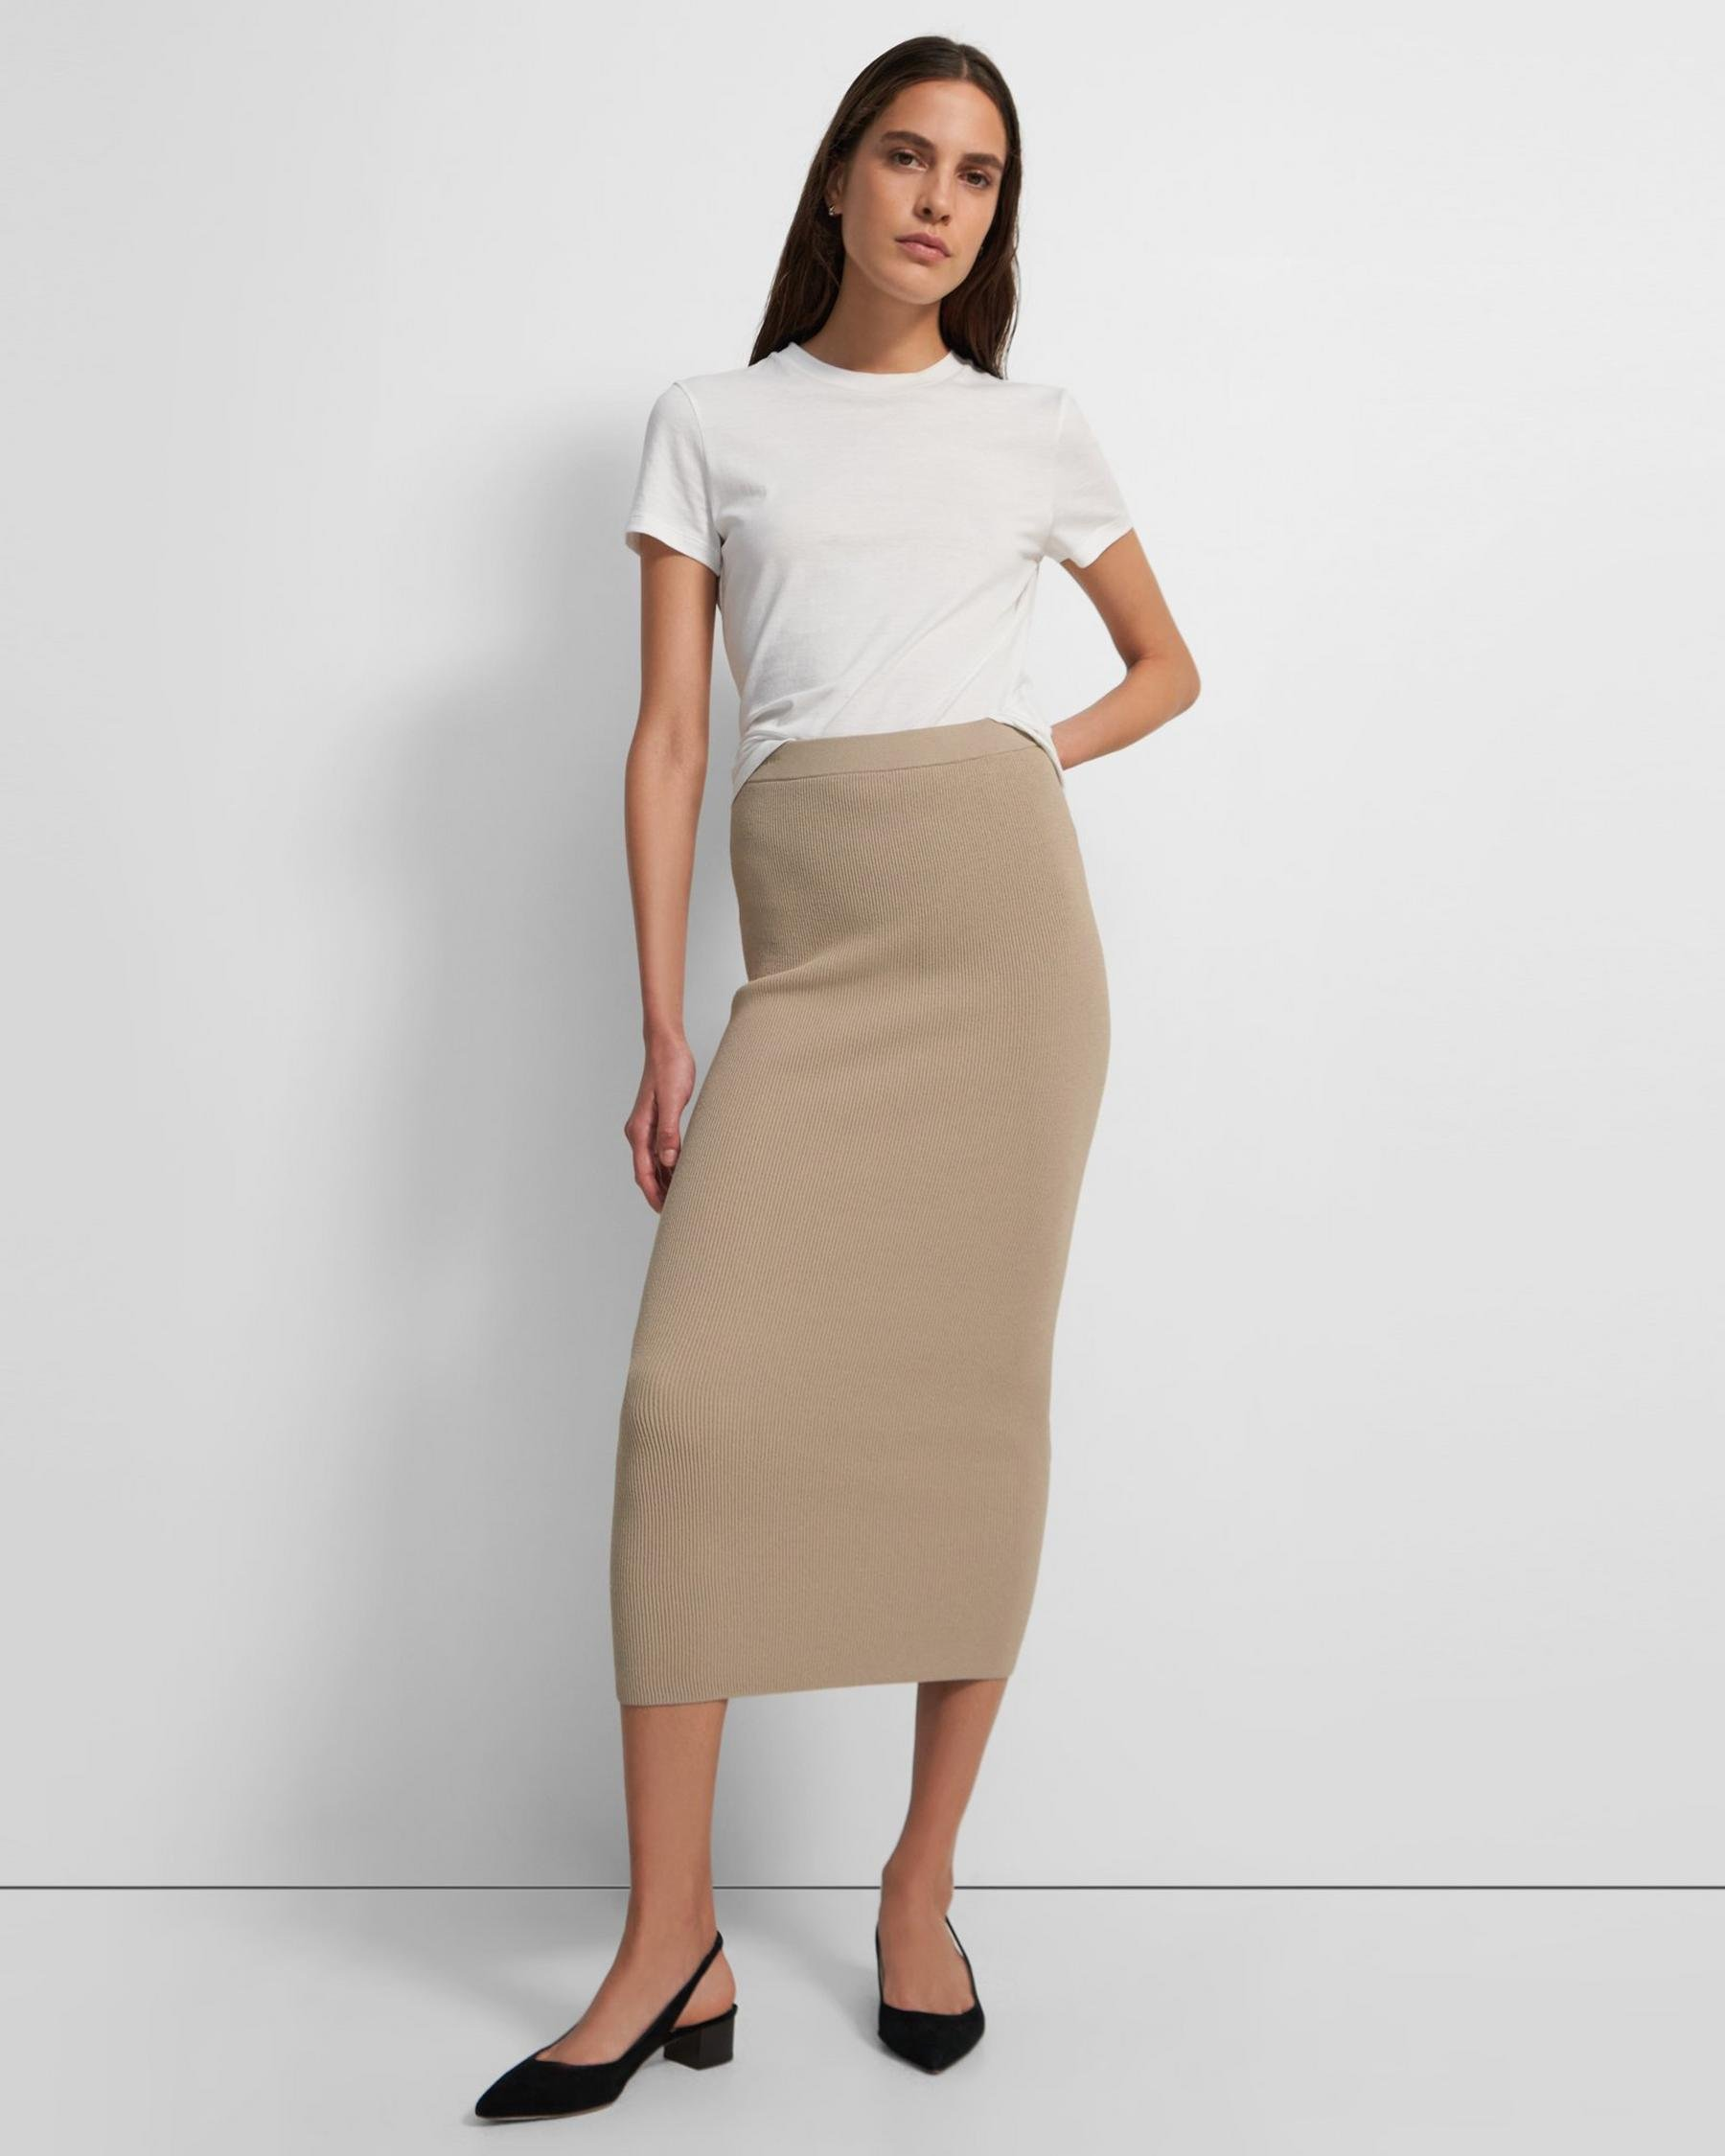 Ribbed Pencil Skirt in Crepe Knit